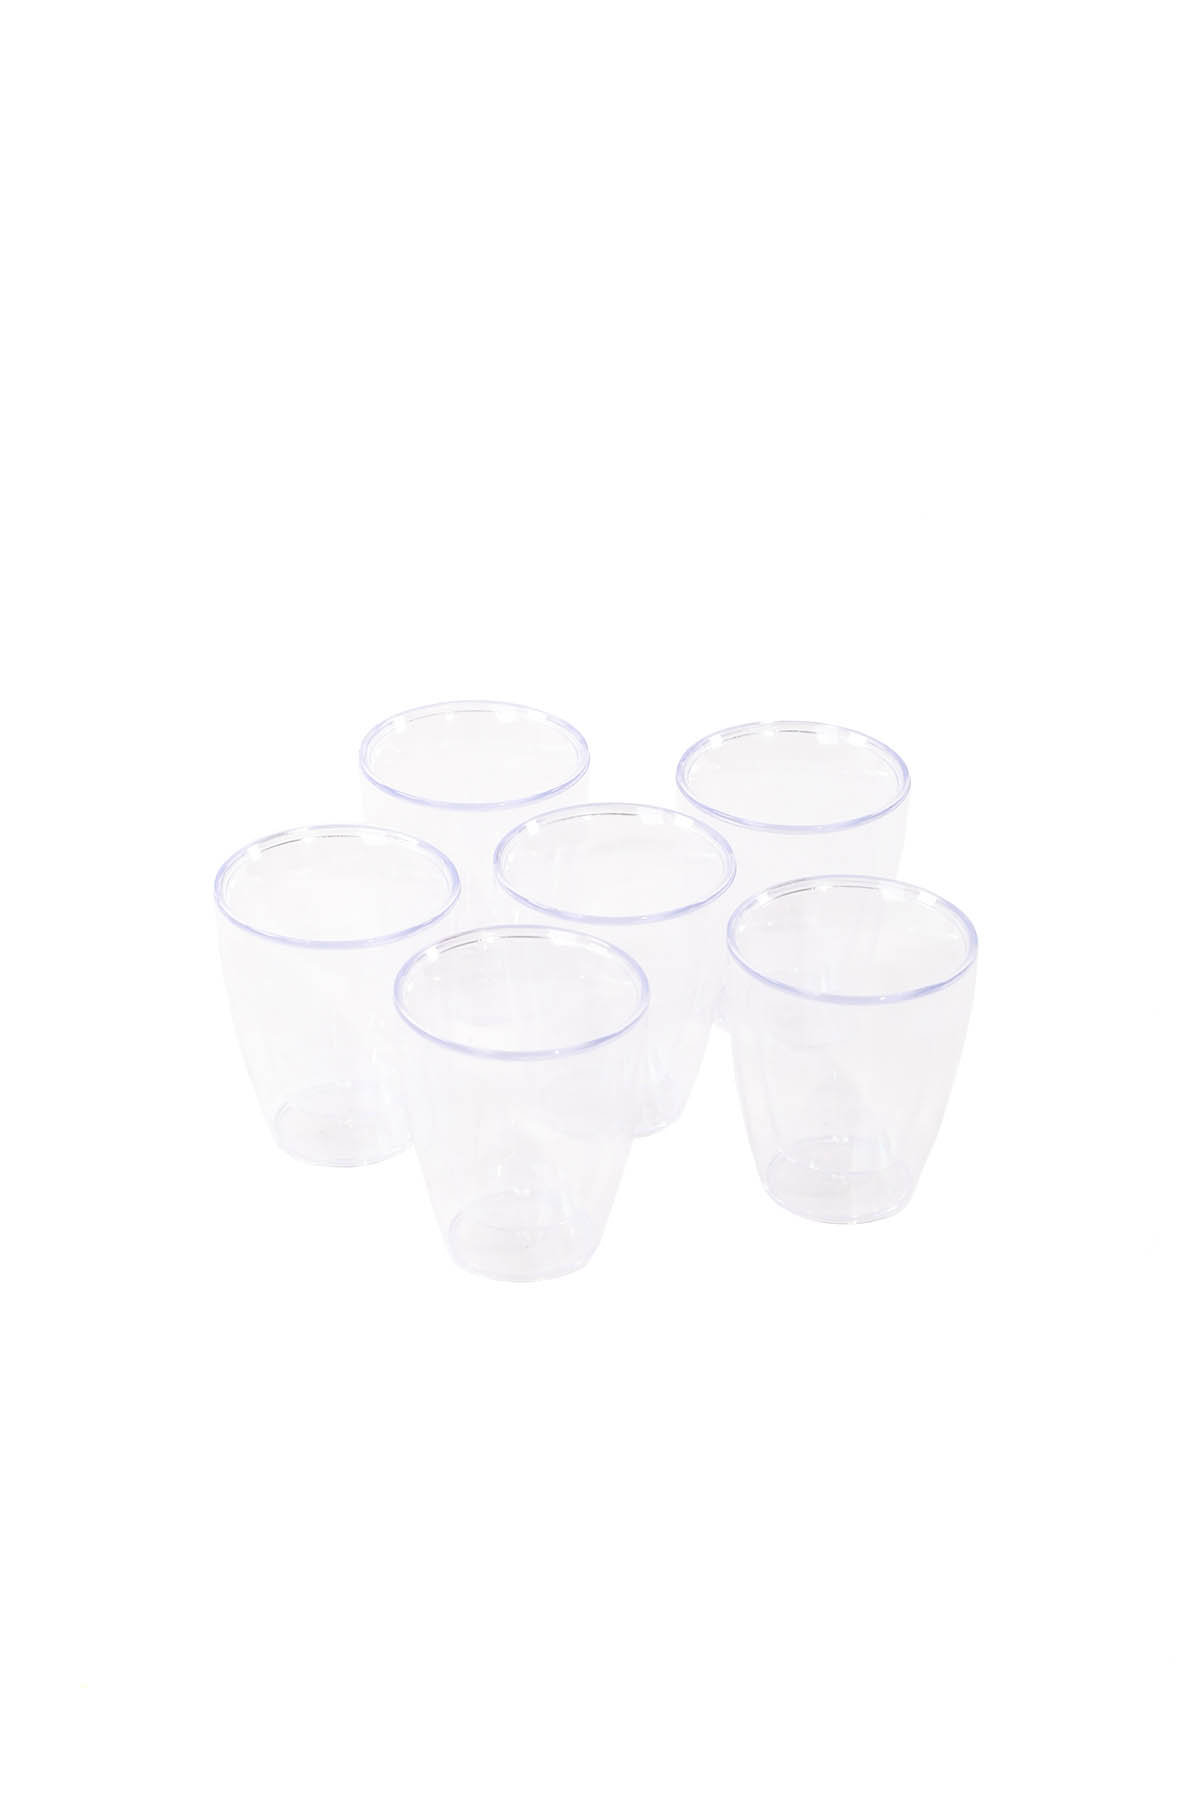 Double Walled Non-Burning Drinking Set 6 Pieces